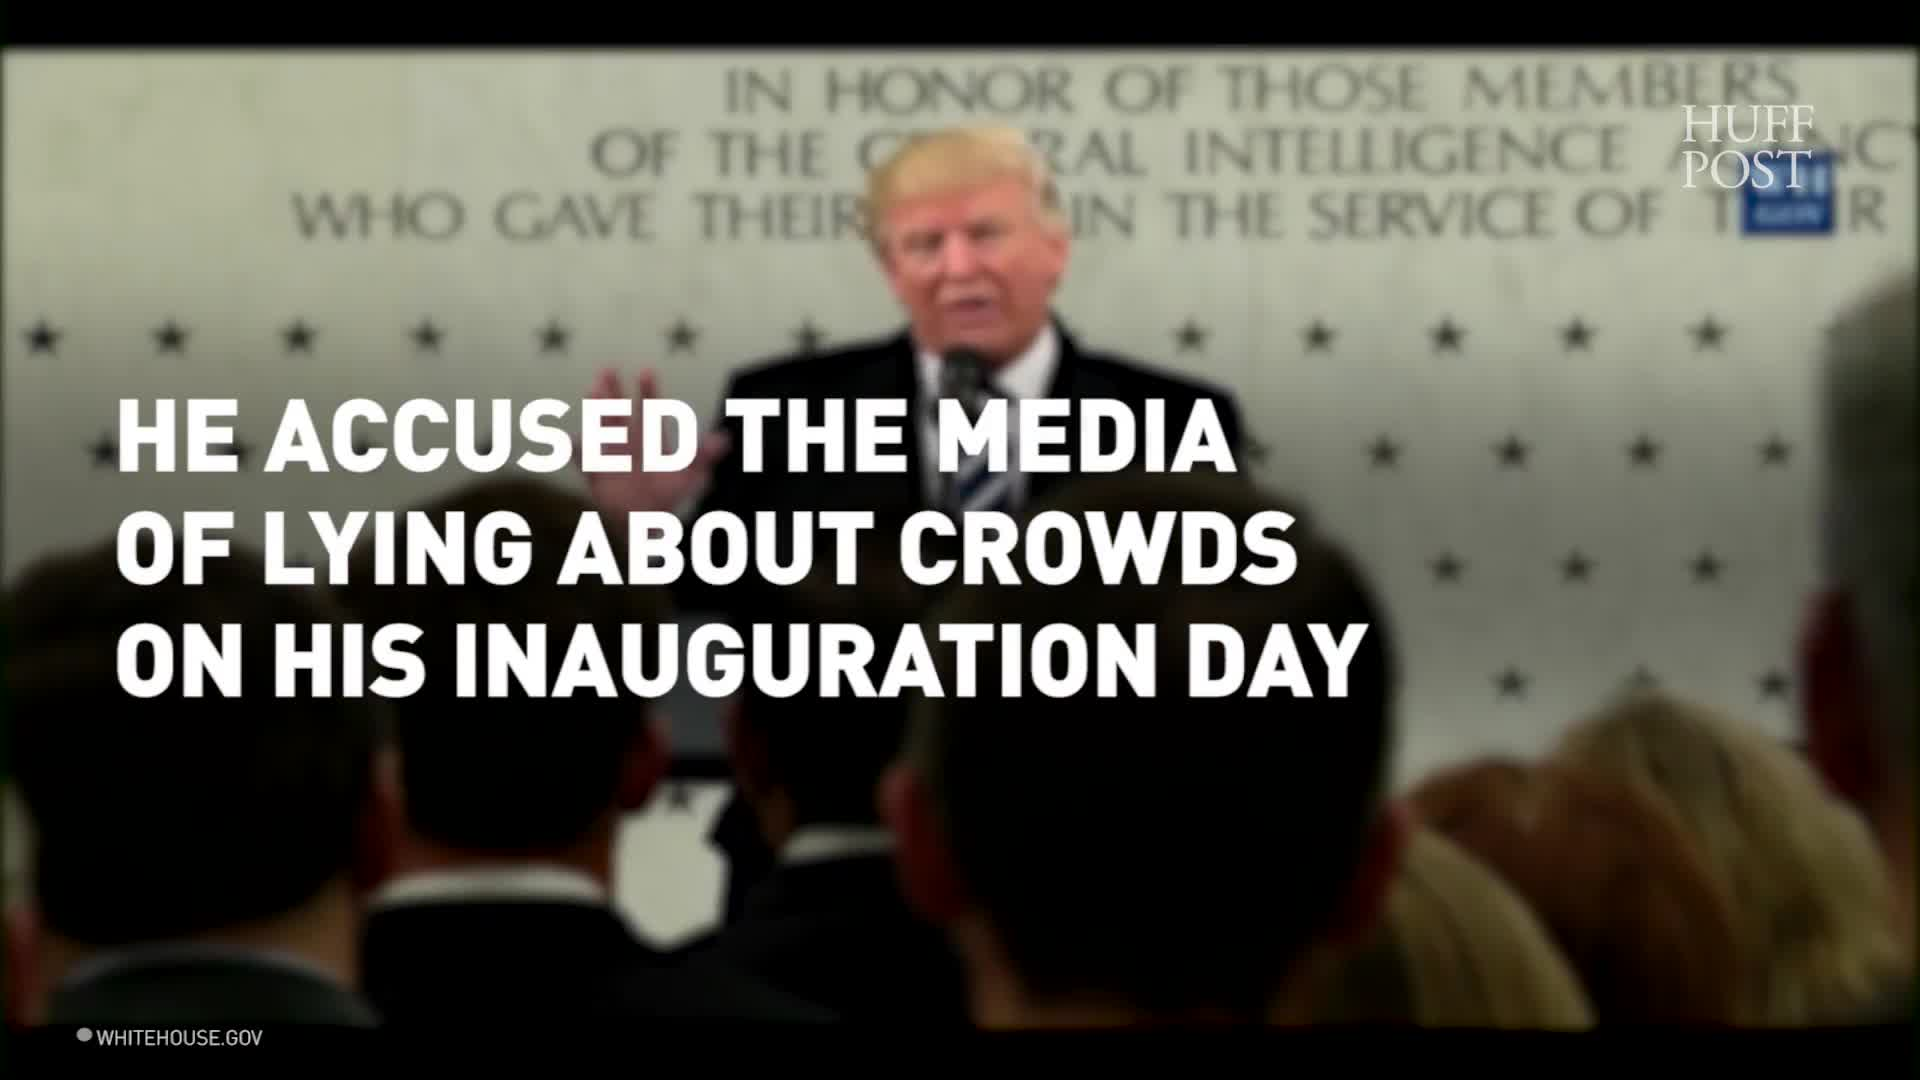 Trump And His Press Secretary Flagrantly Lied On Their First Full Day In Office. That Matters.